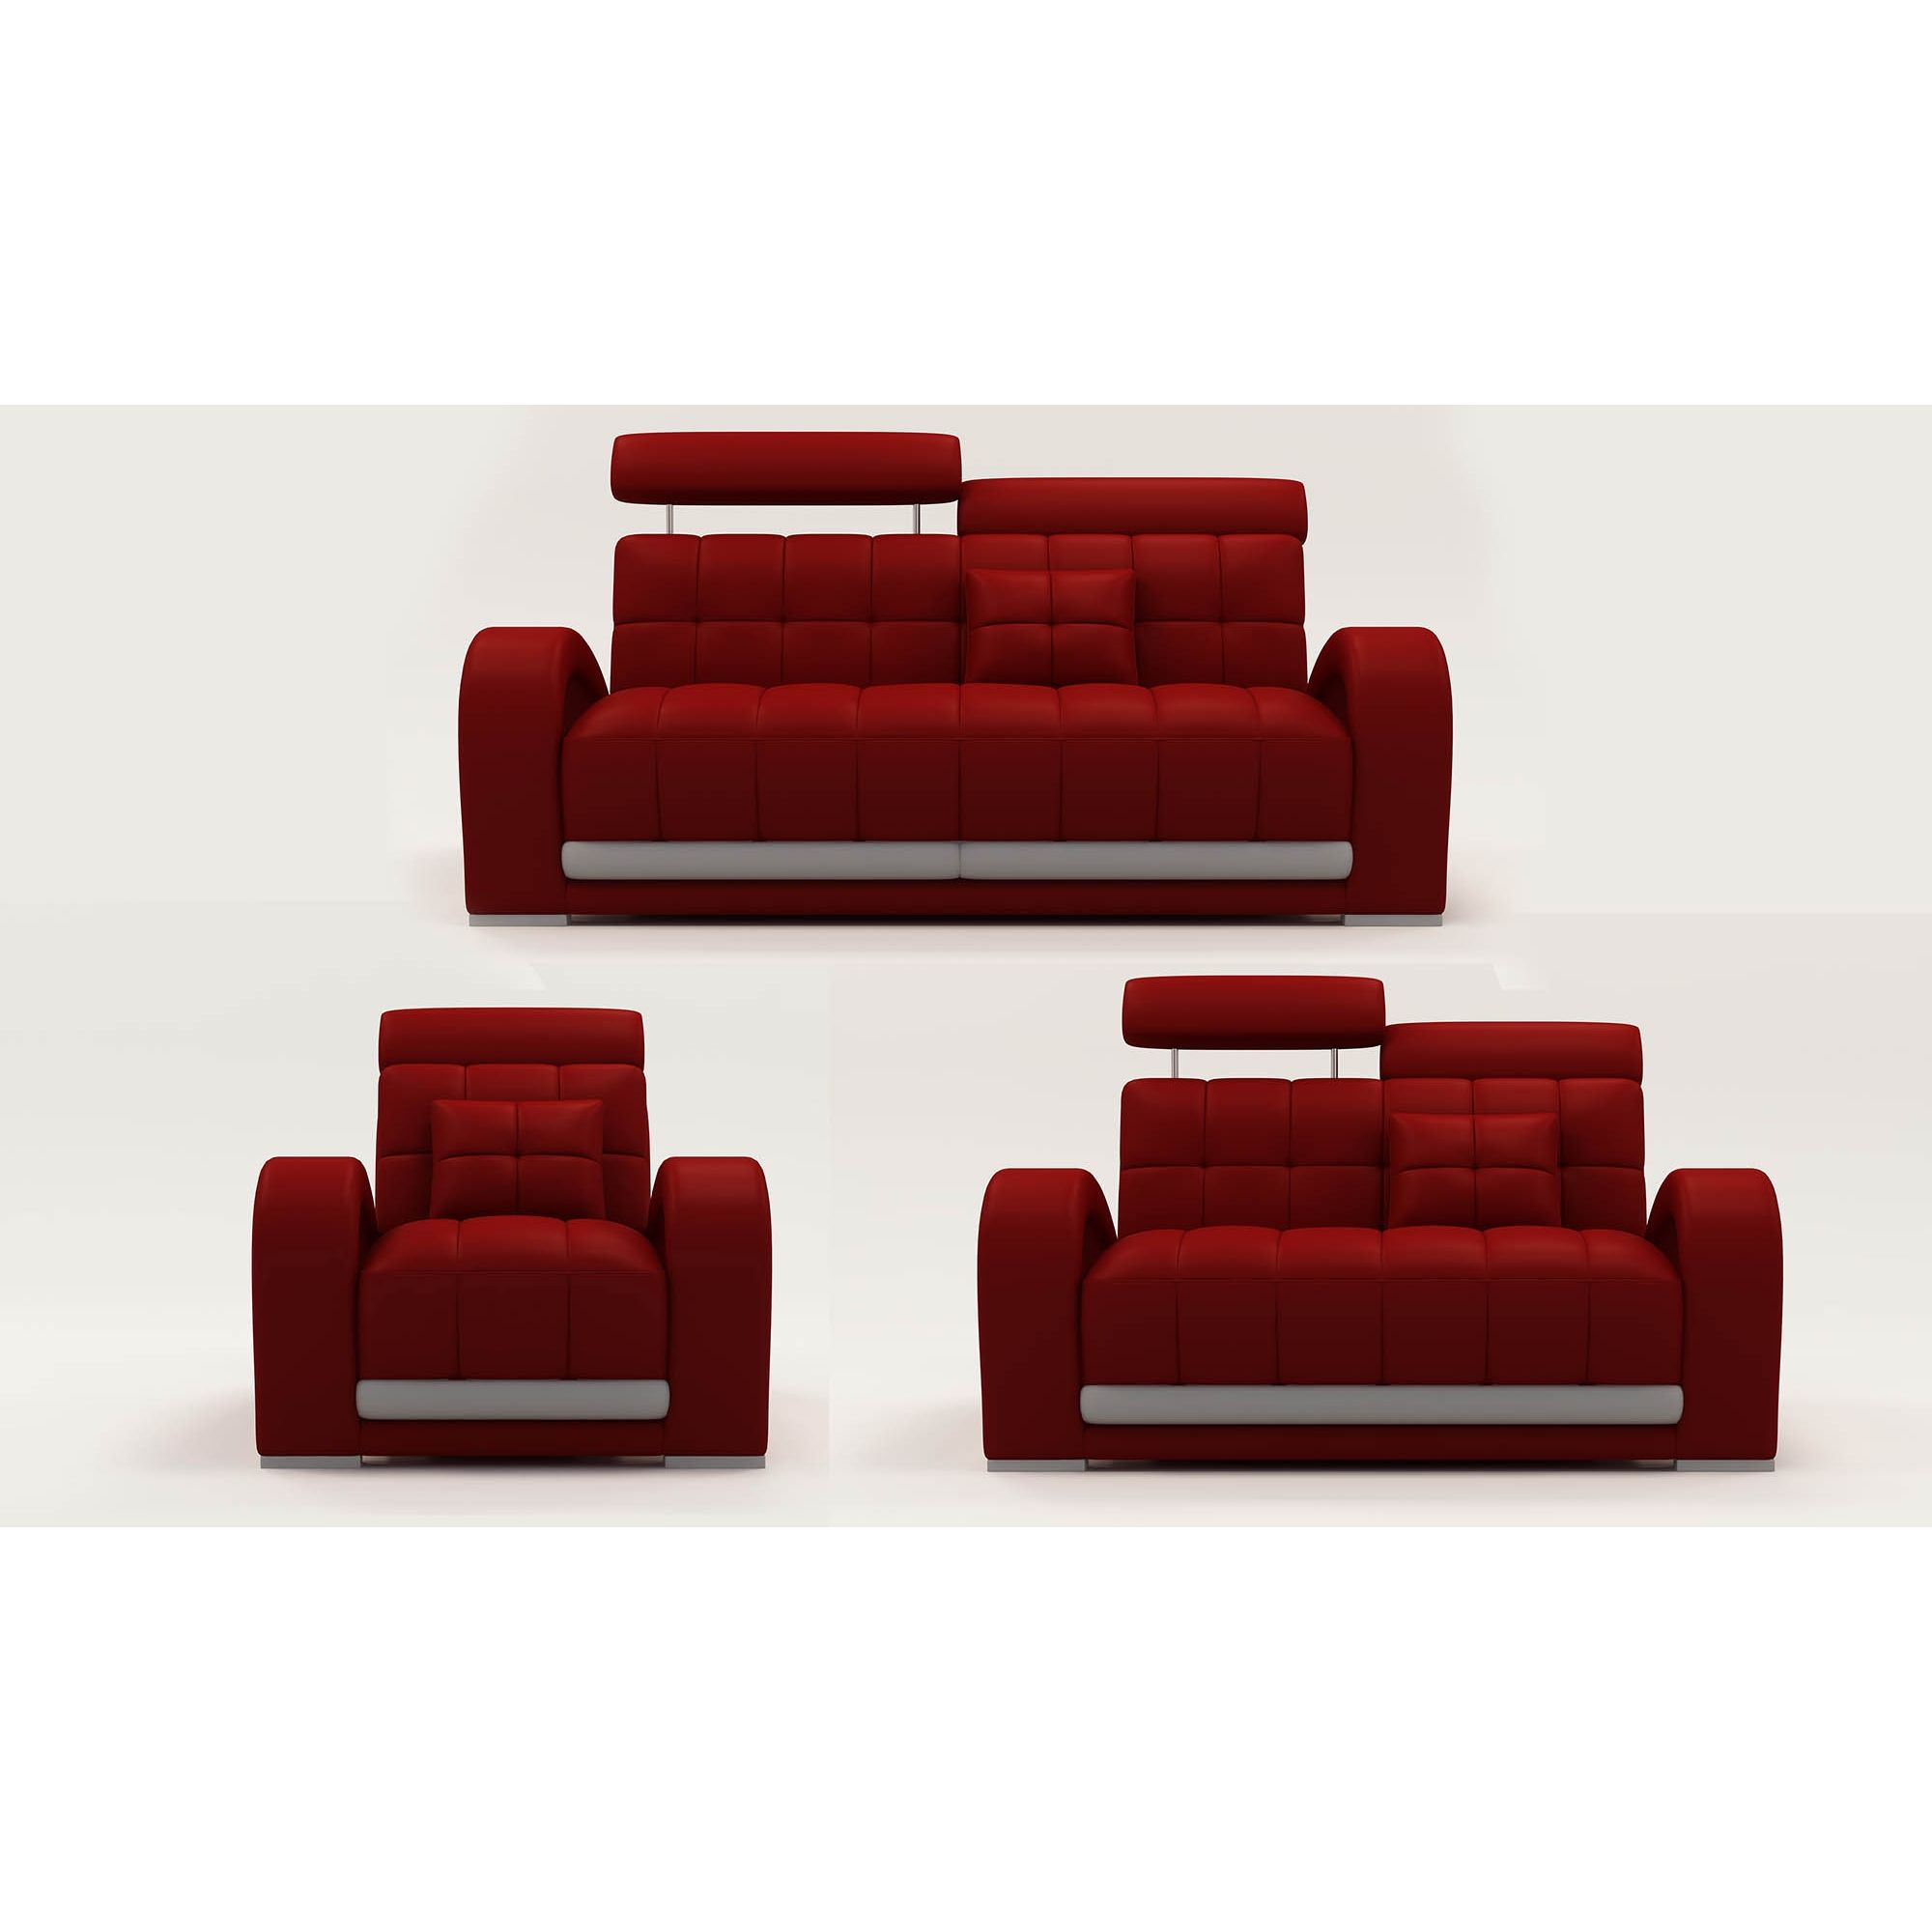 Deco in paris ensemble canape cuir verdi 3 1 1 places for Canape 2 places rouge